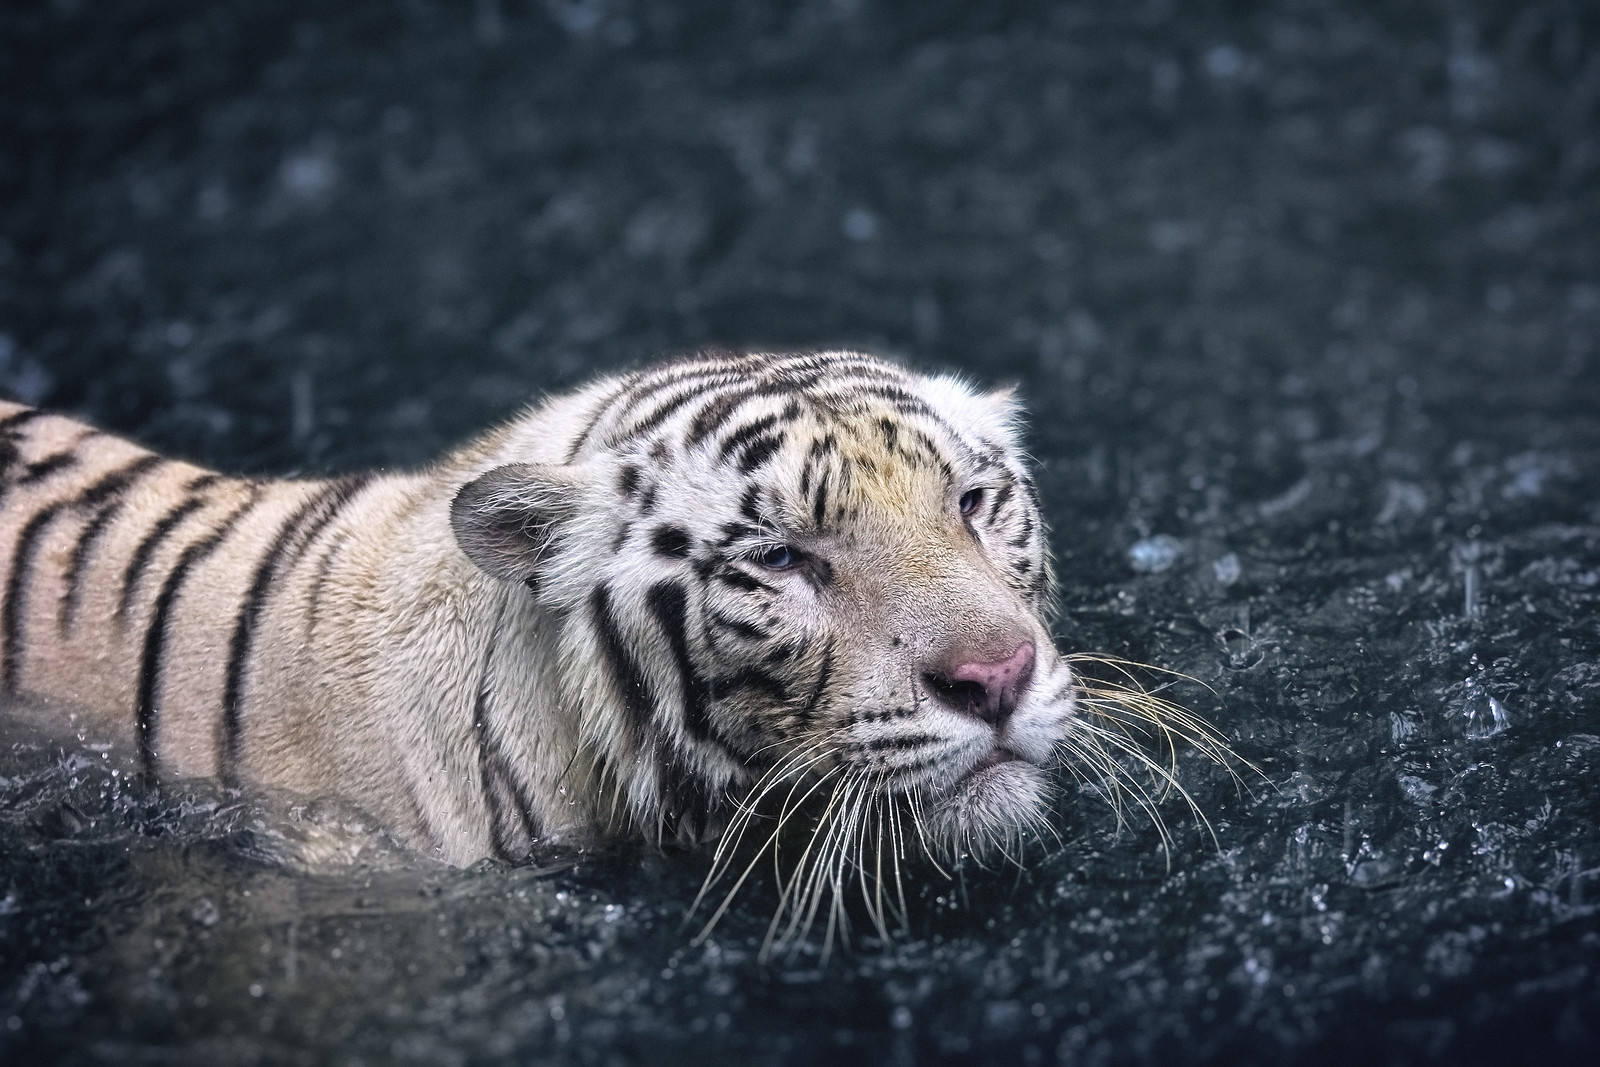 White Tiger swimming under the Rain